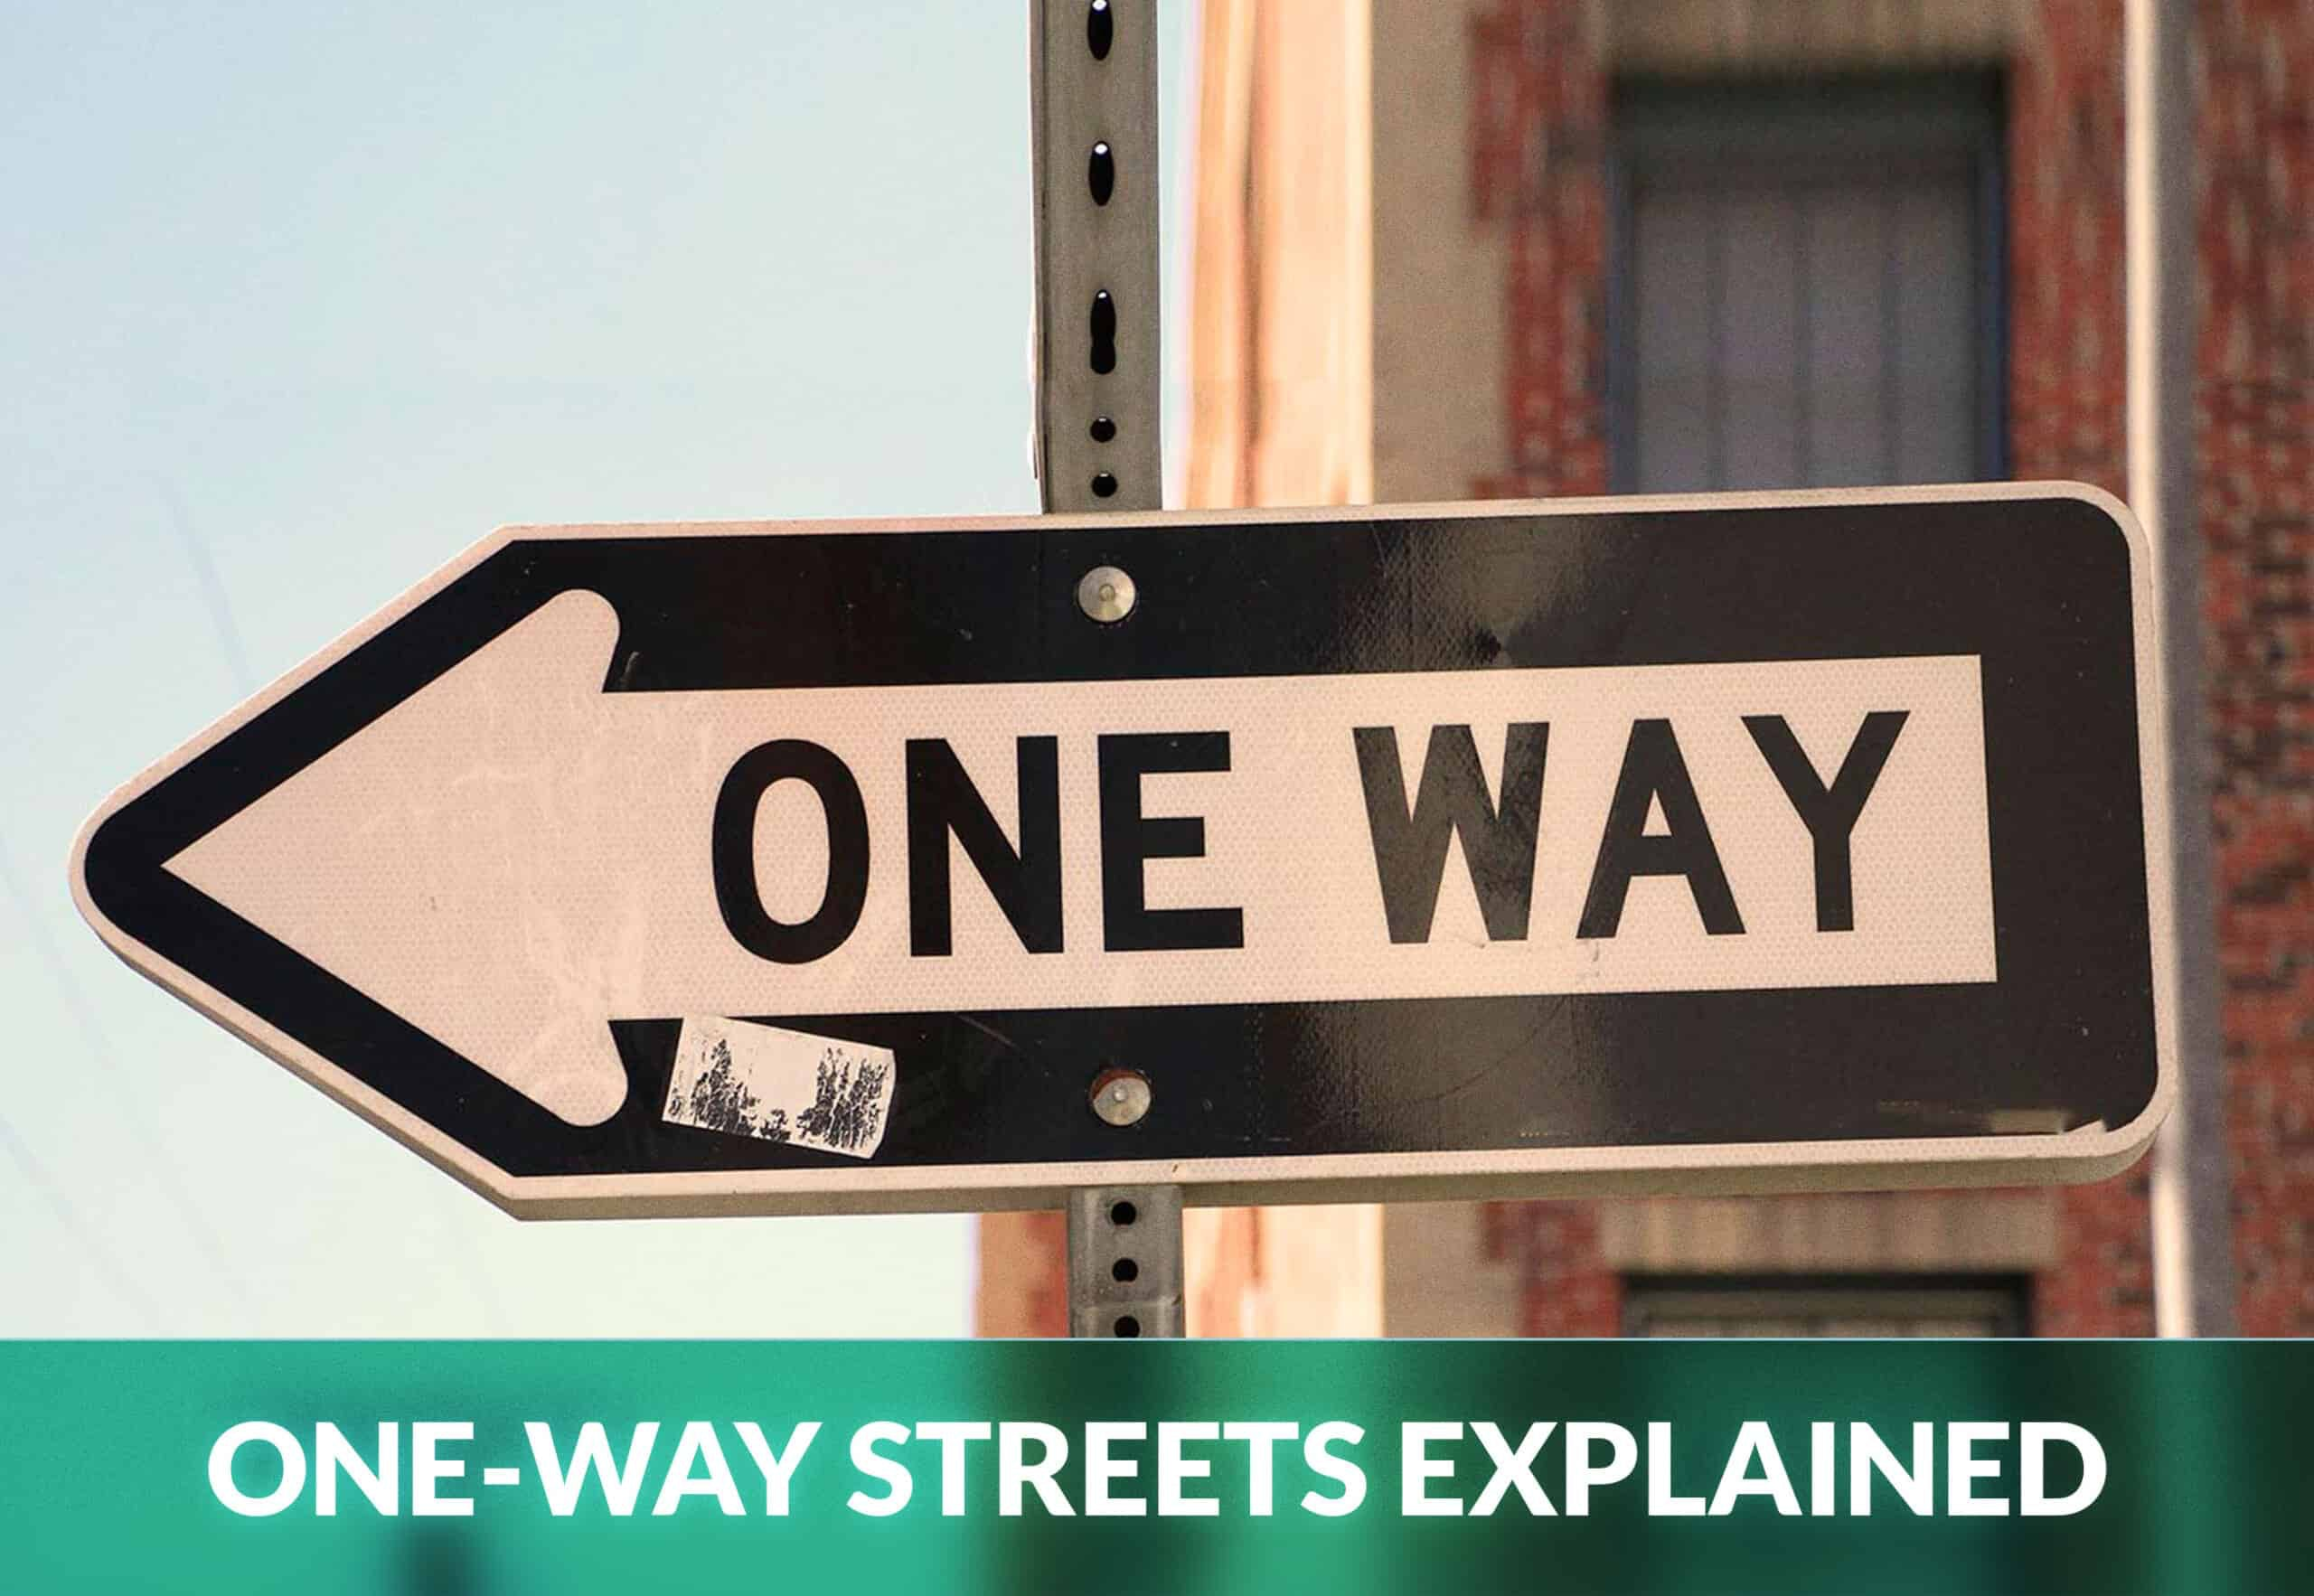 ONE-WAY STREETS EXPLAINED